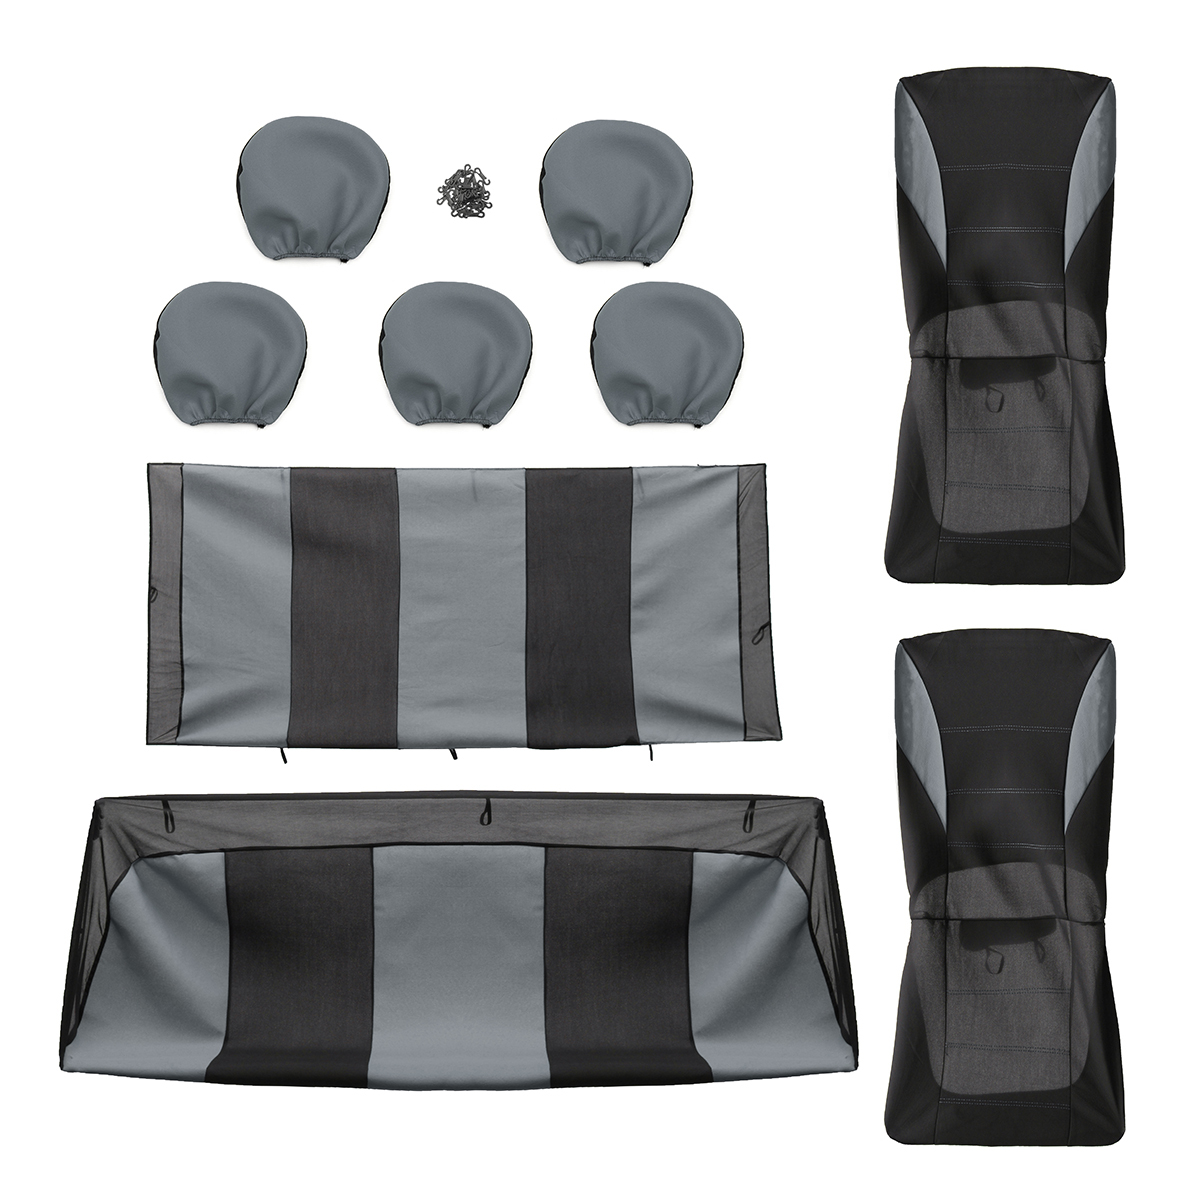 Universal Four Seasons Grey Black Fabric Car Seat Cover Protectors 9pc Full Set Airbag Compatible